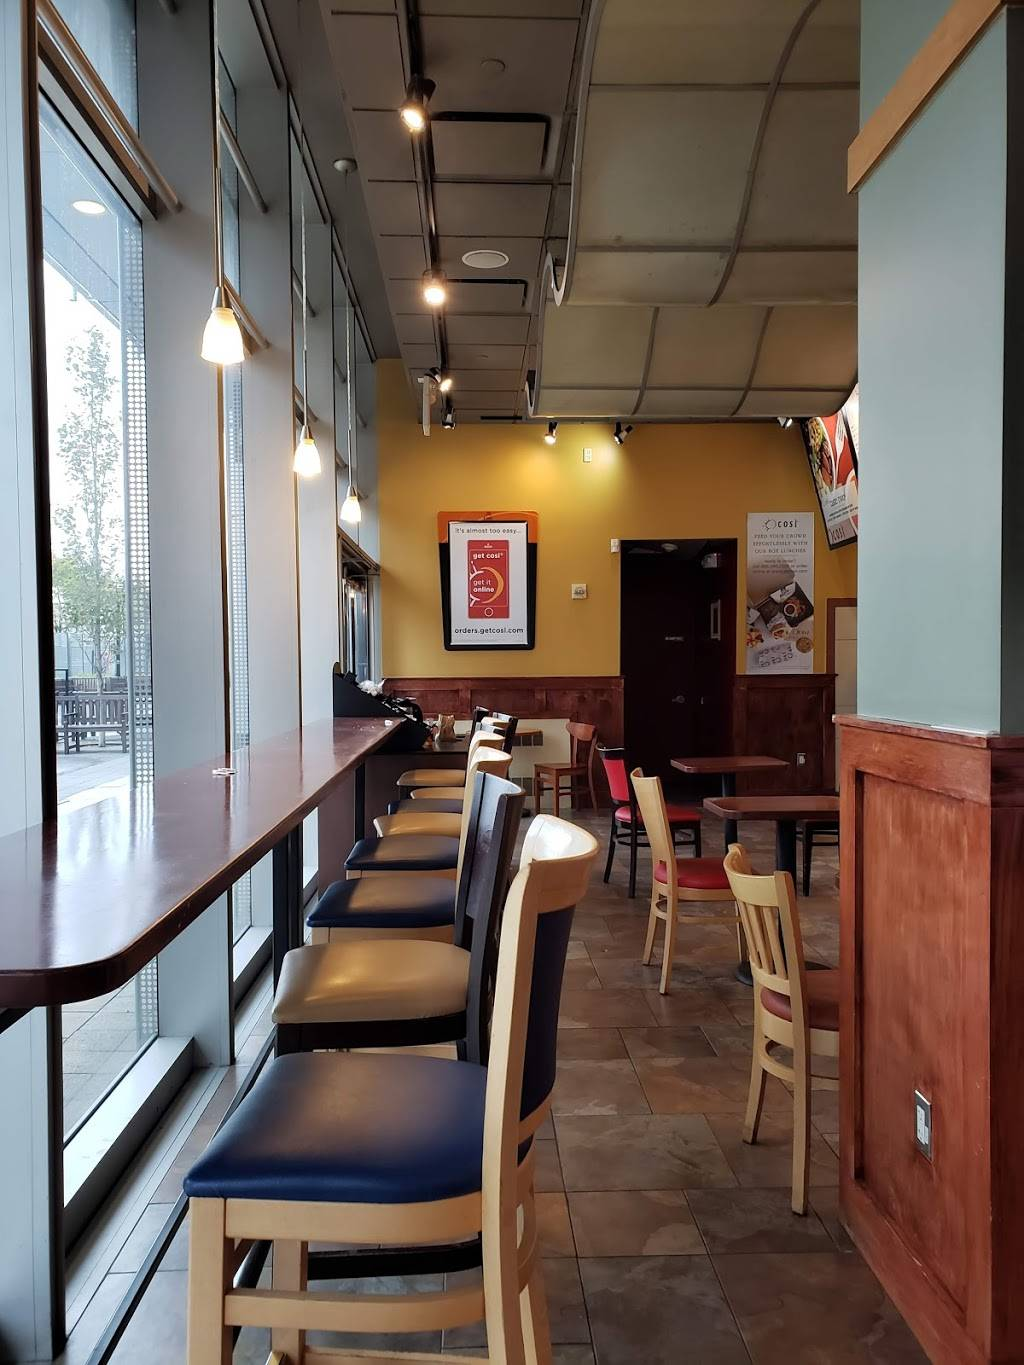 Cosi | meal takeaway | 30 Hudson St, Jersey City, NJ 07302, USA | 2013697030 OR +1 201-369-7030